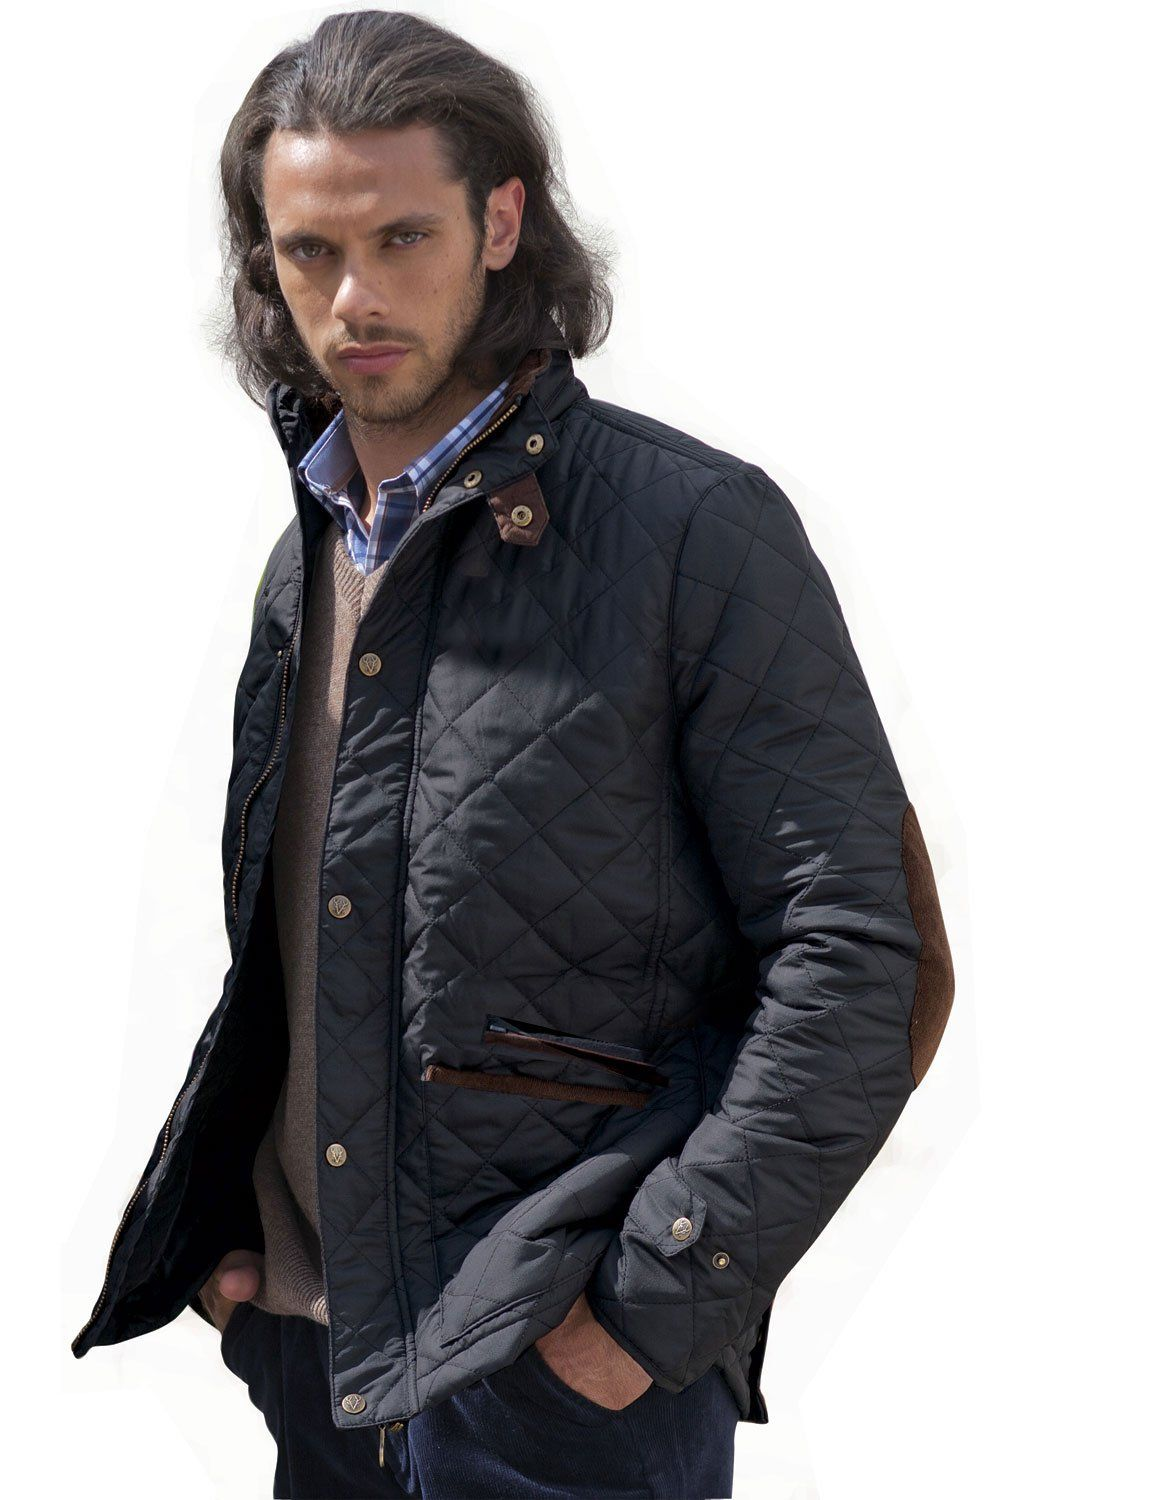 VEDONEIRE Mens NAVY Quilted Jacket (3039) padded quilt coat vest ... : navy quilted jacket - Adamdwight.com